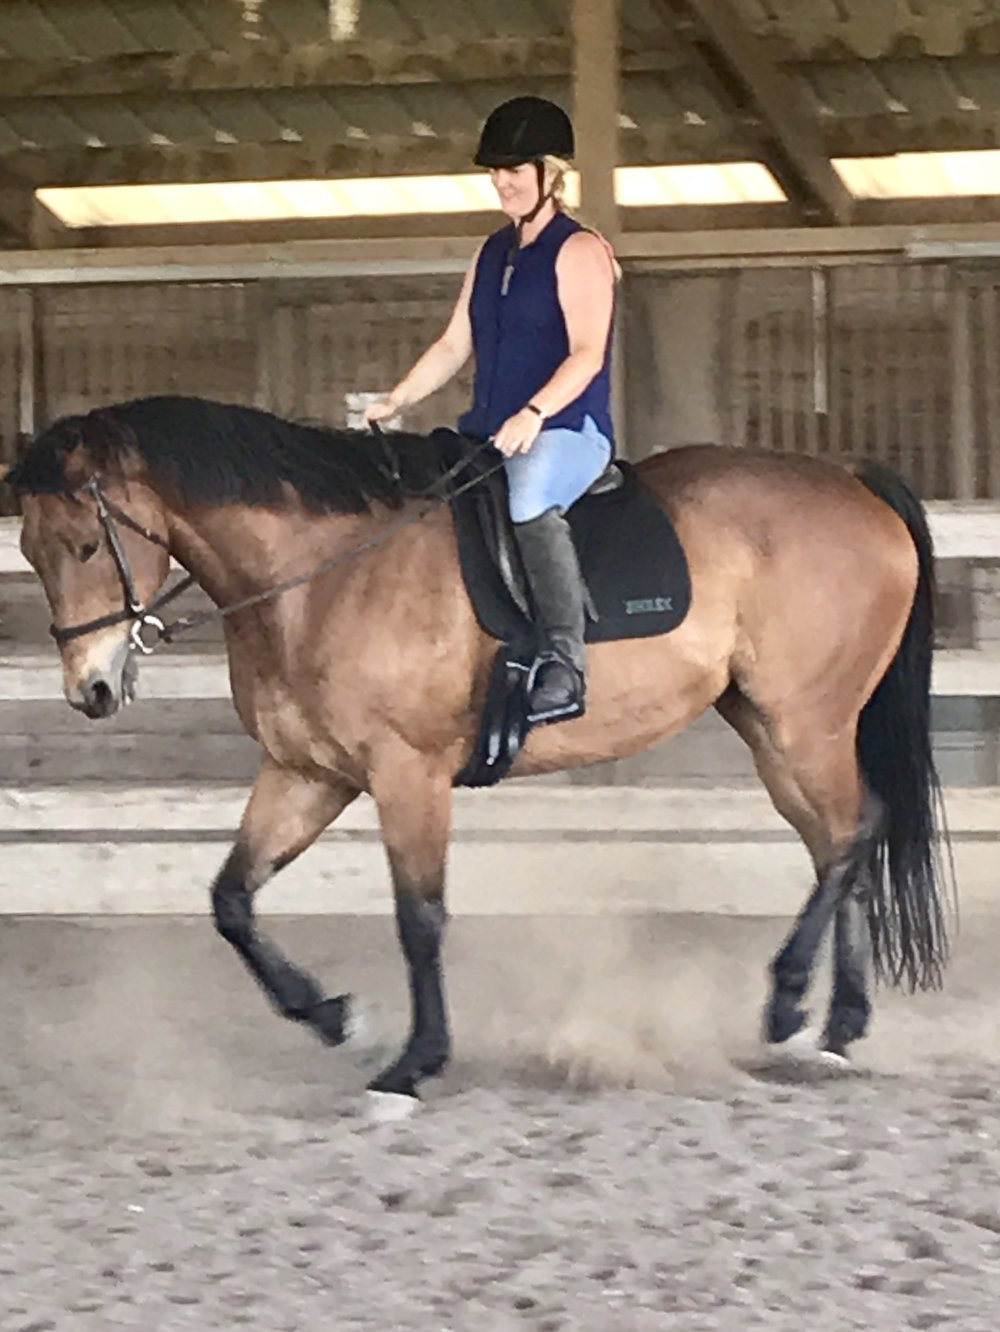 s Here is Phoebe Harper showing Mikey off. He is the reason we do this stuff!  He rounds off so well and happily back to work! Be it easy work!